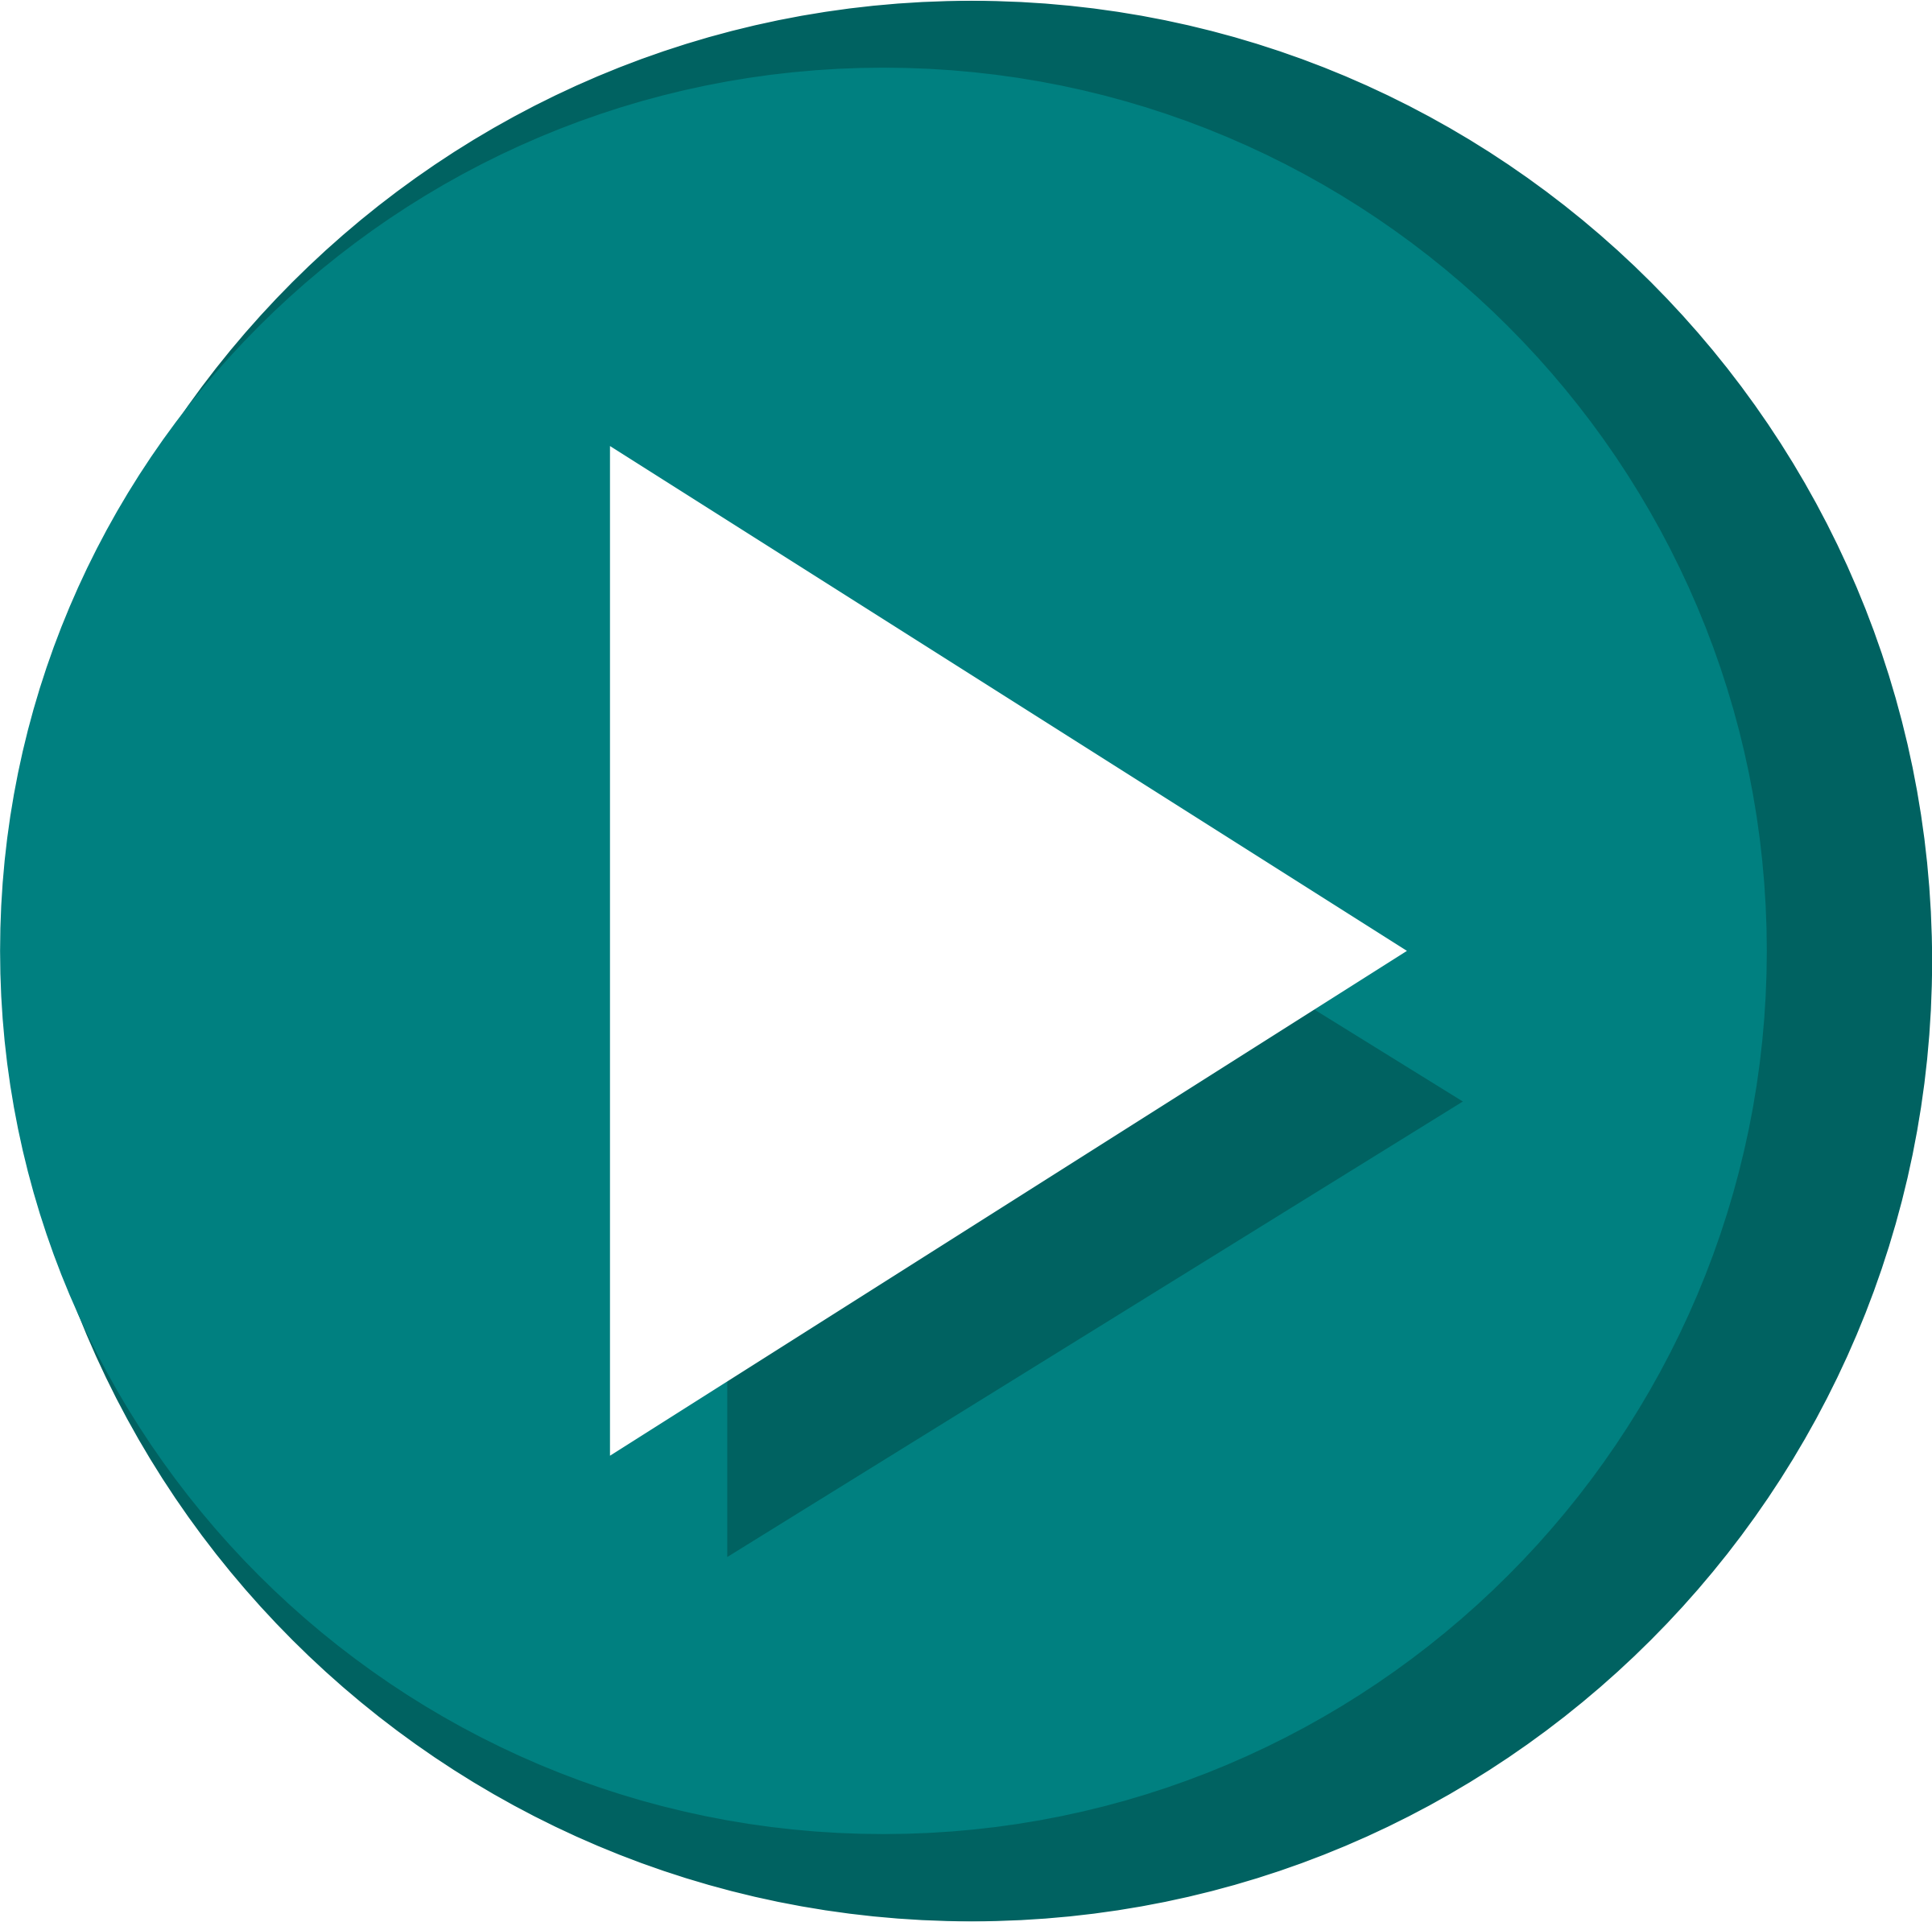 Play Button Icon Png (+).